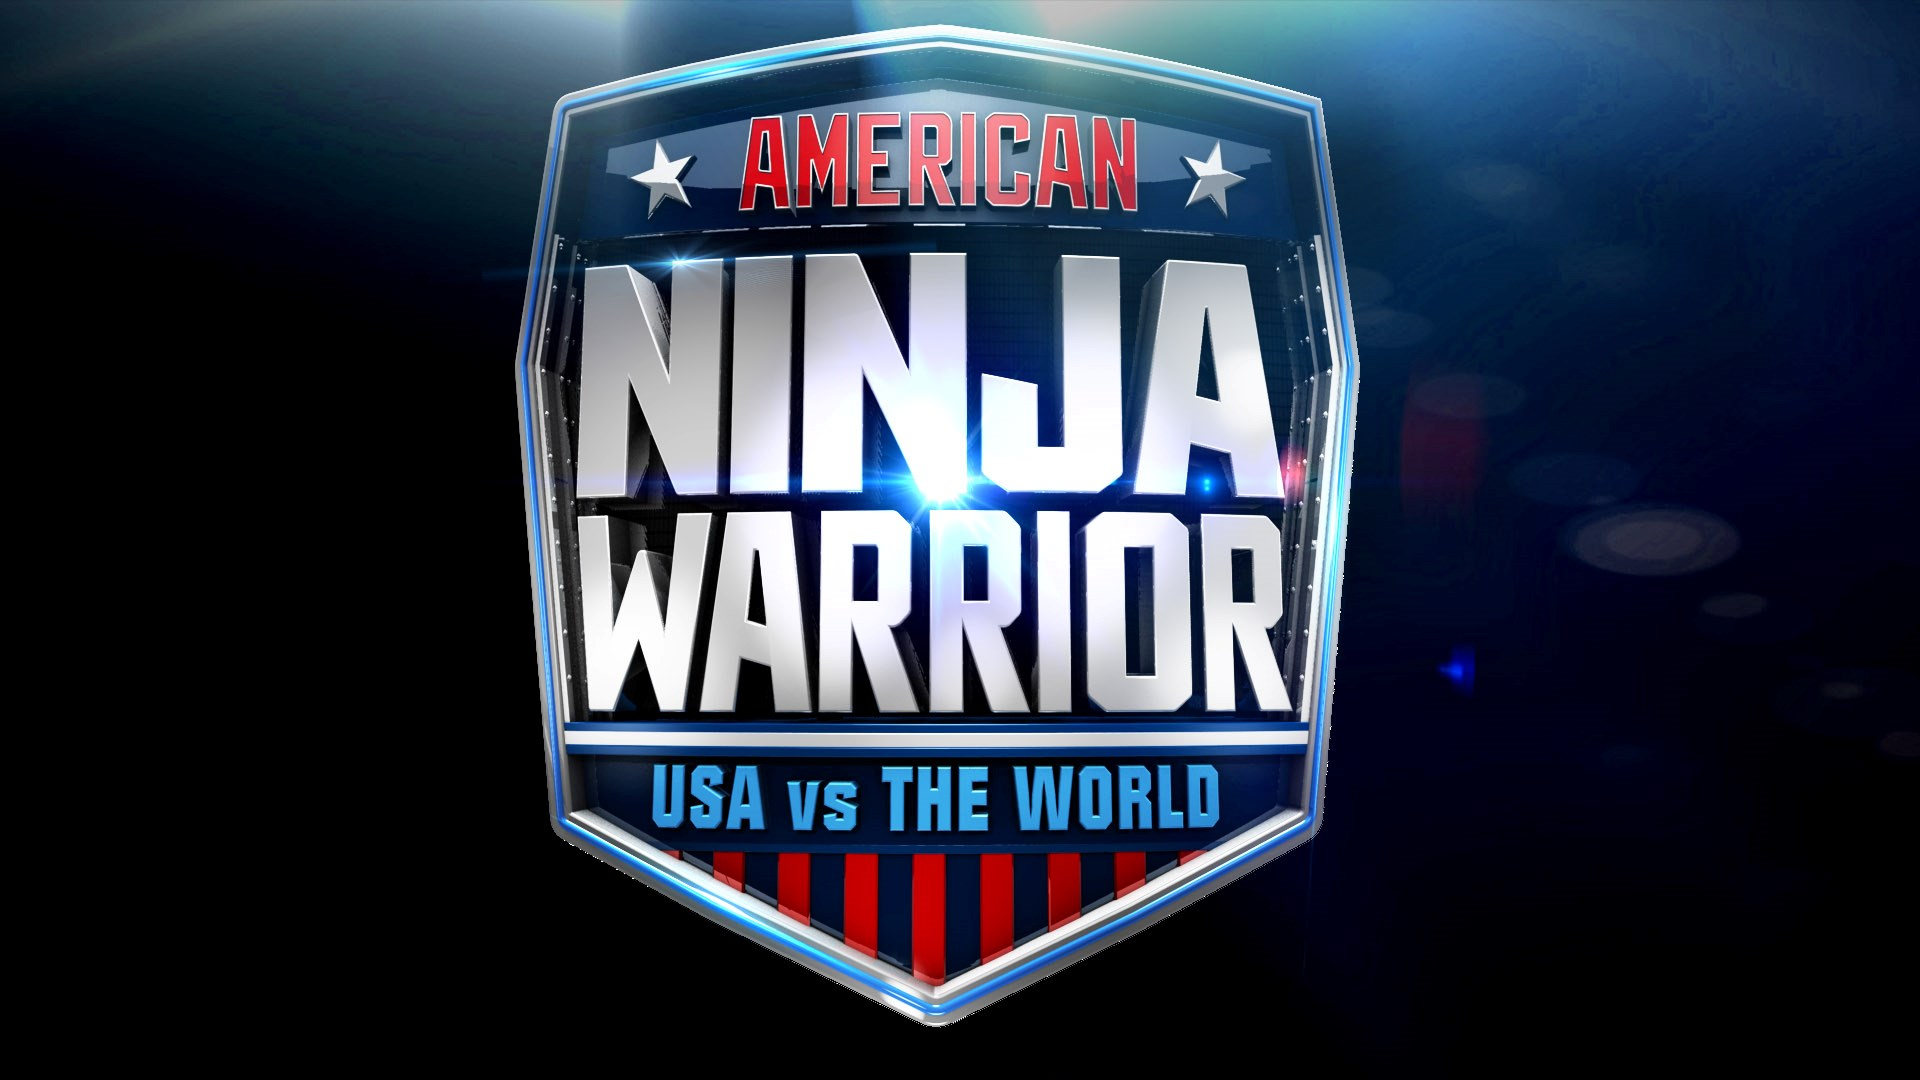 ANW: USA vs THE WORLD